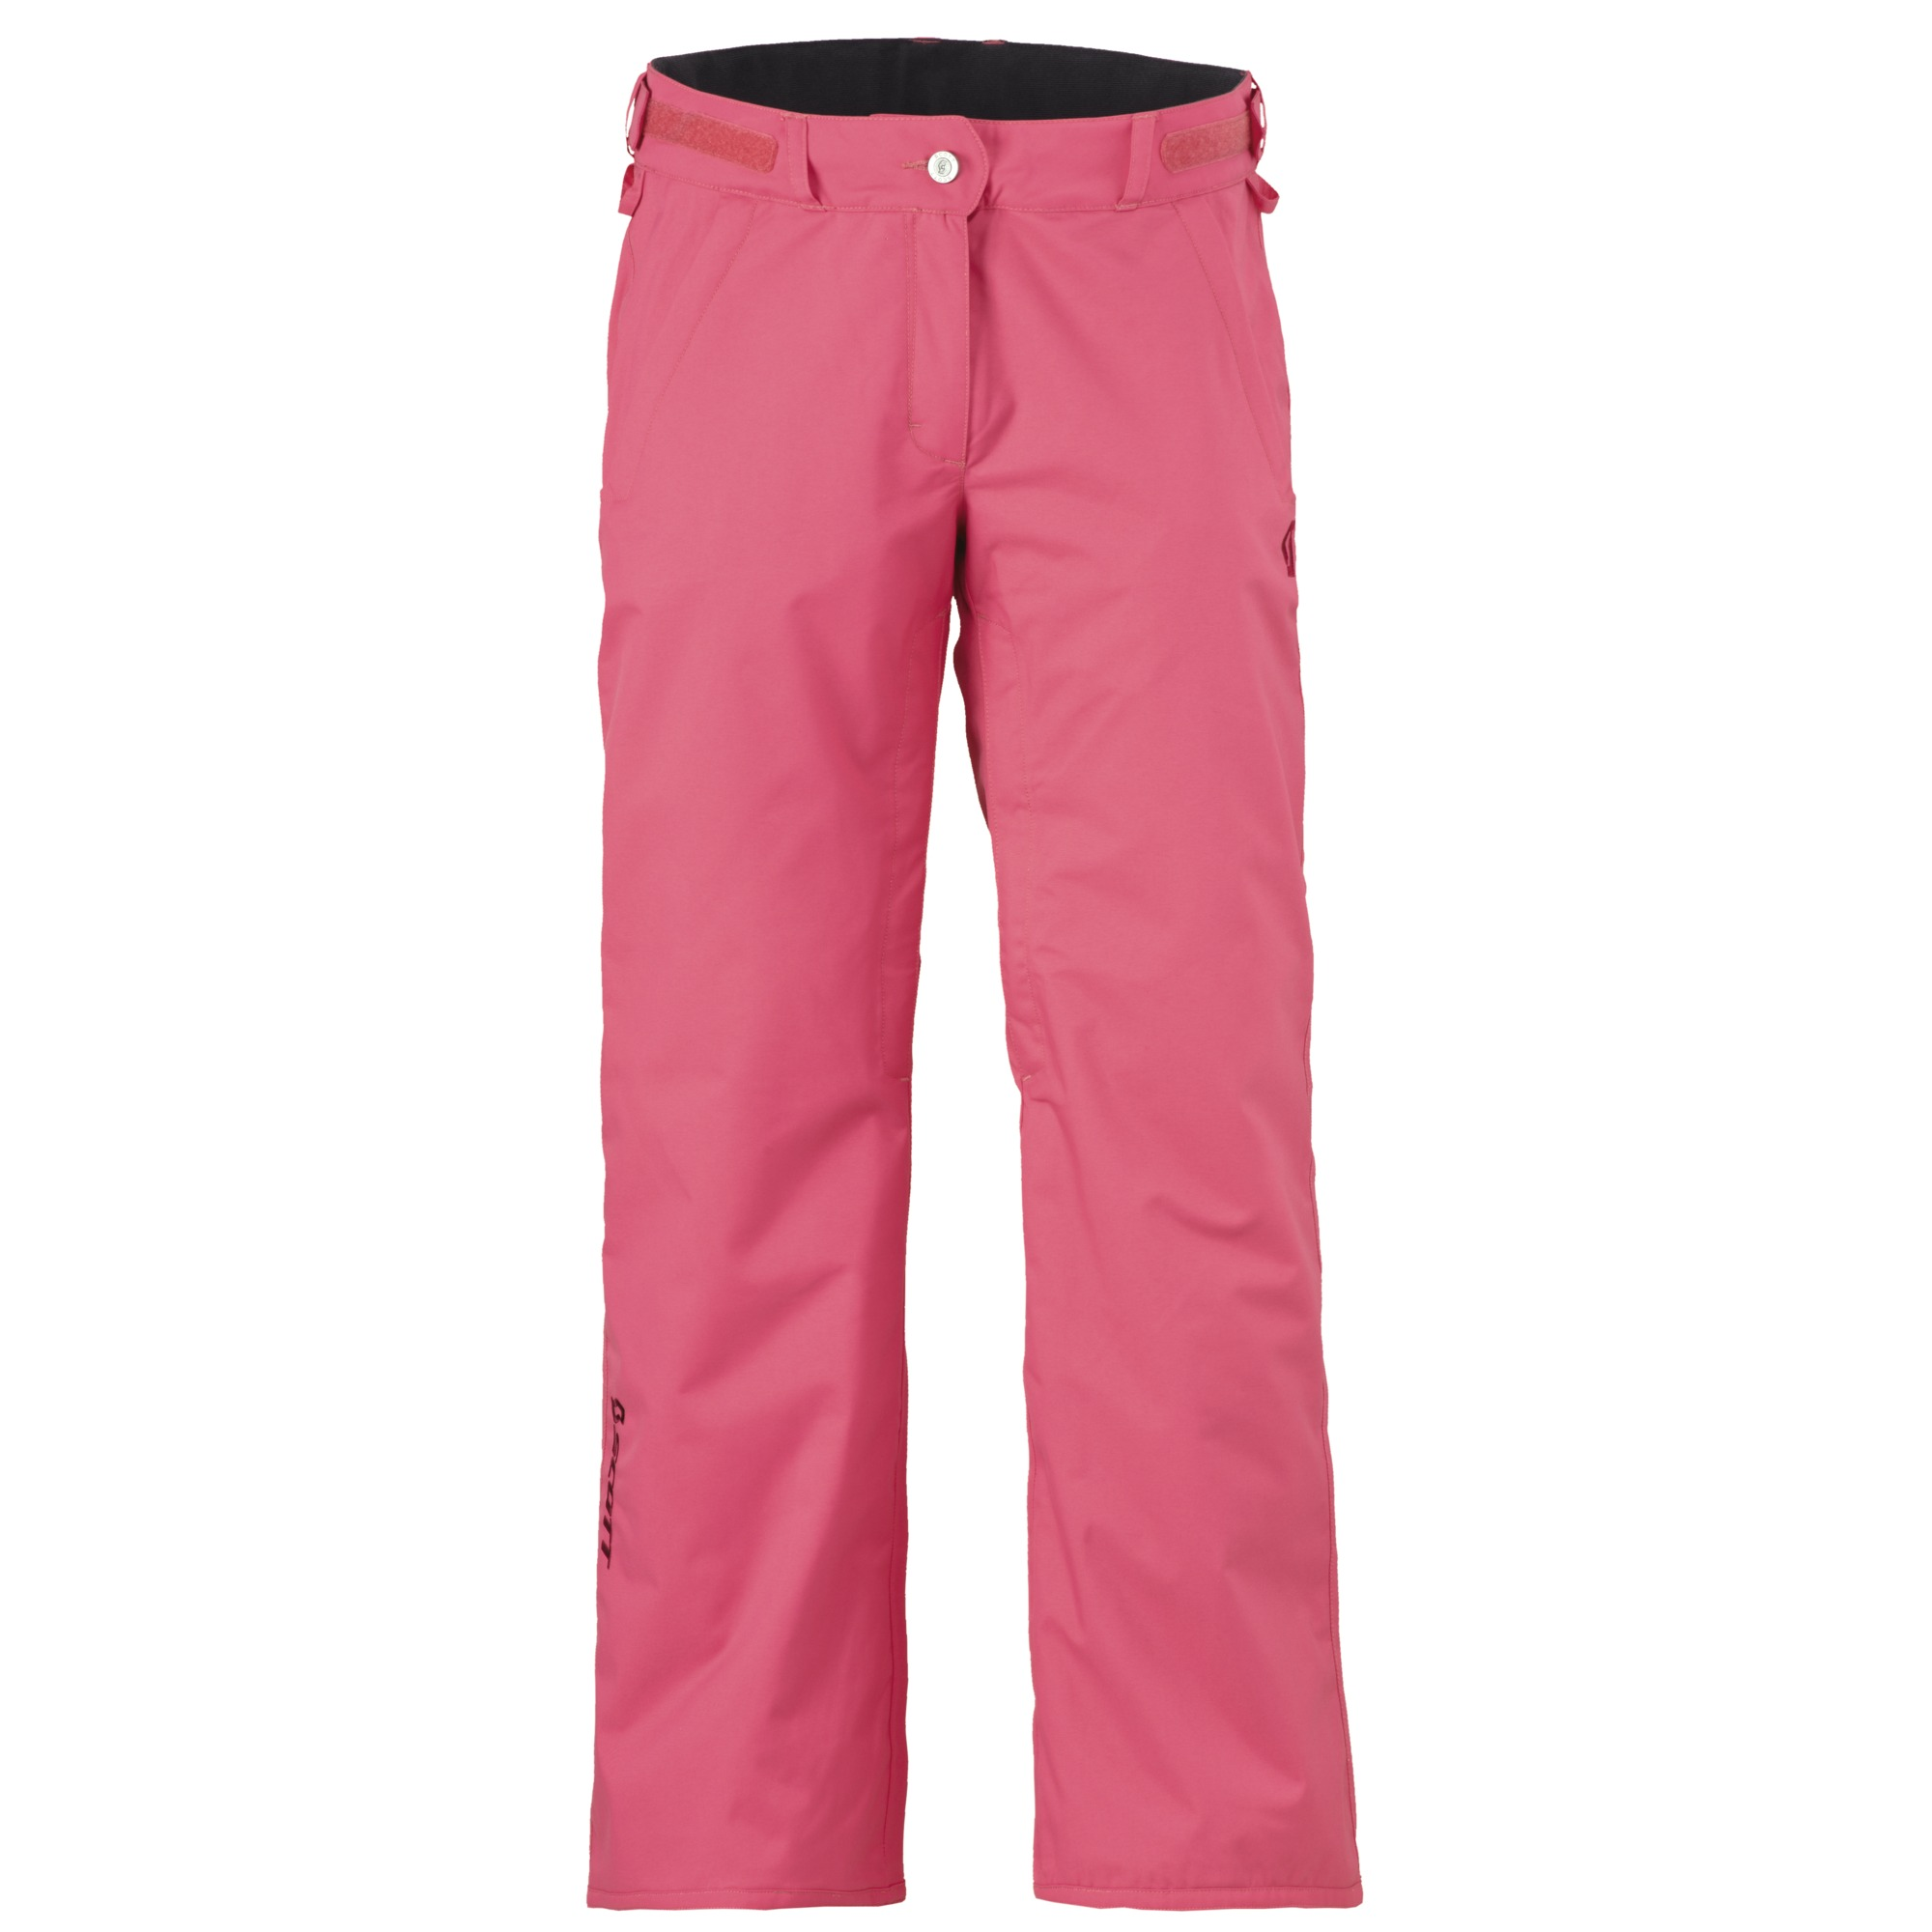 SCOTT Enumclaw Women's Pant